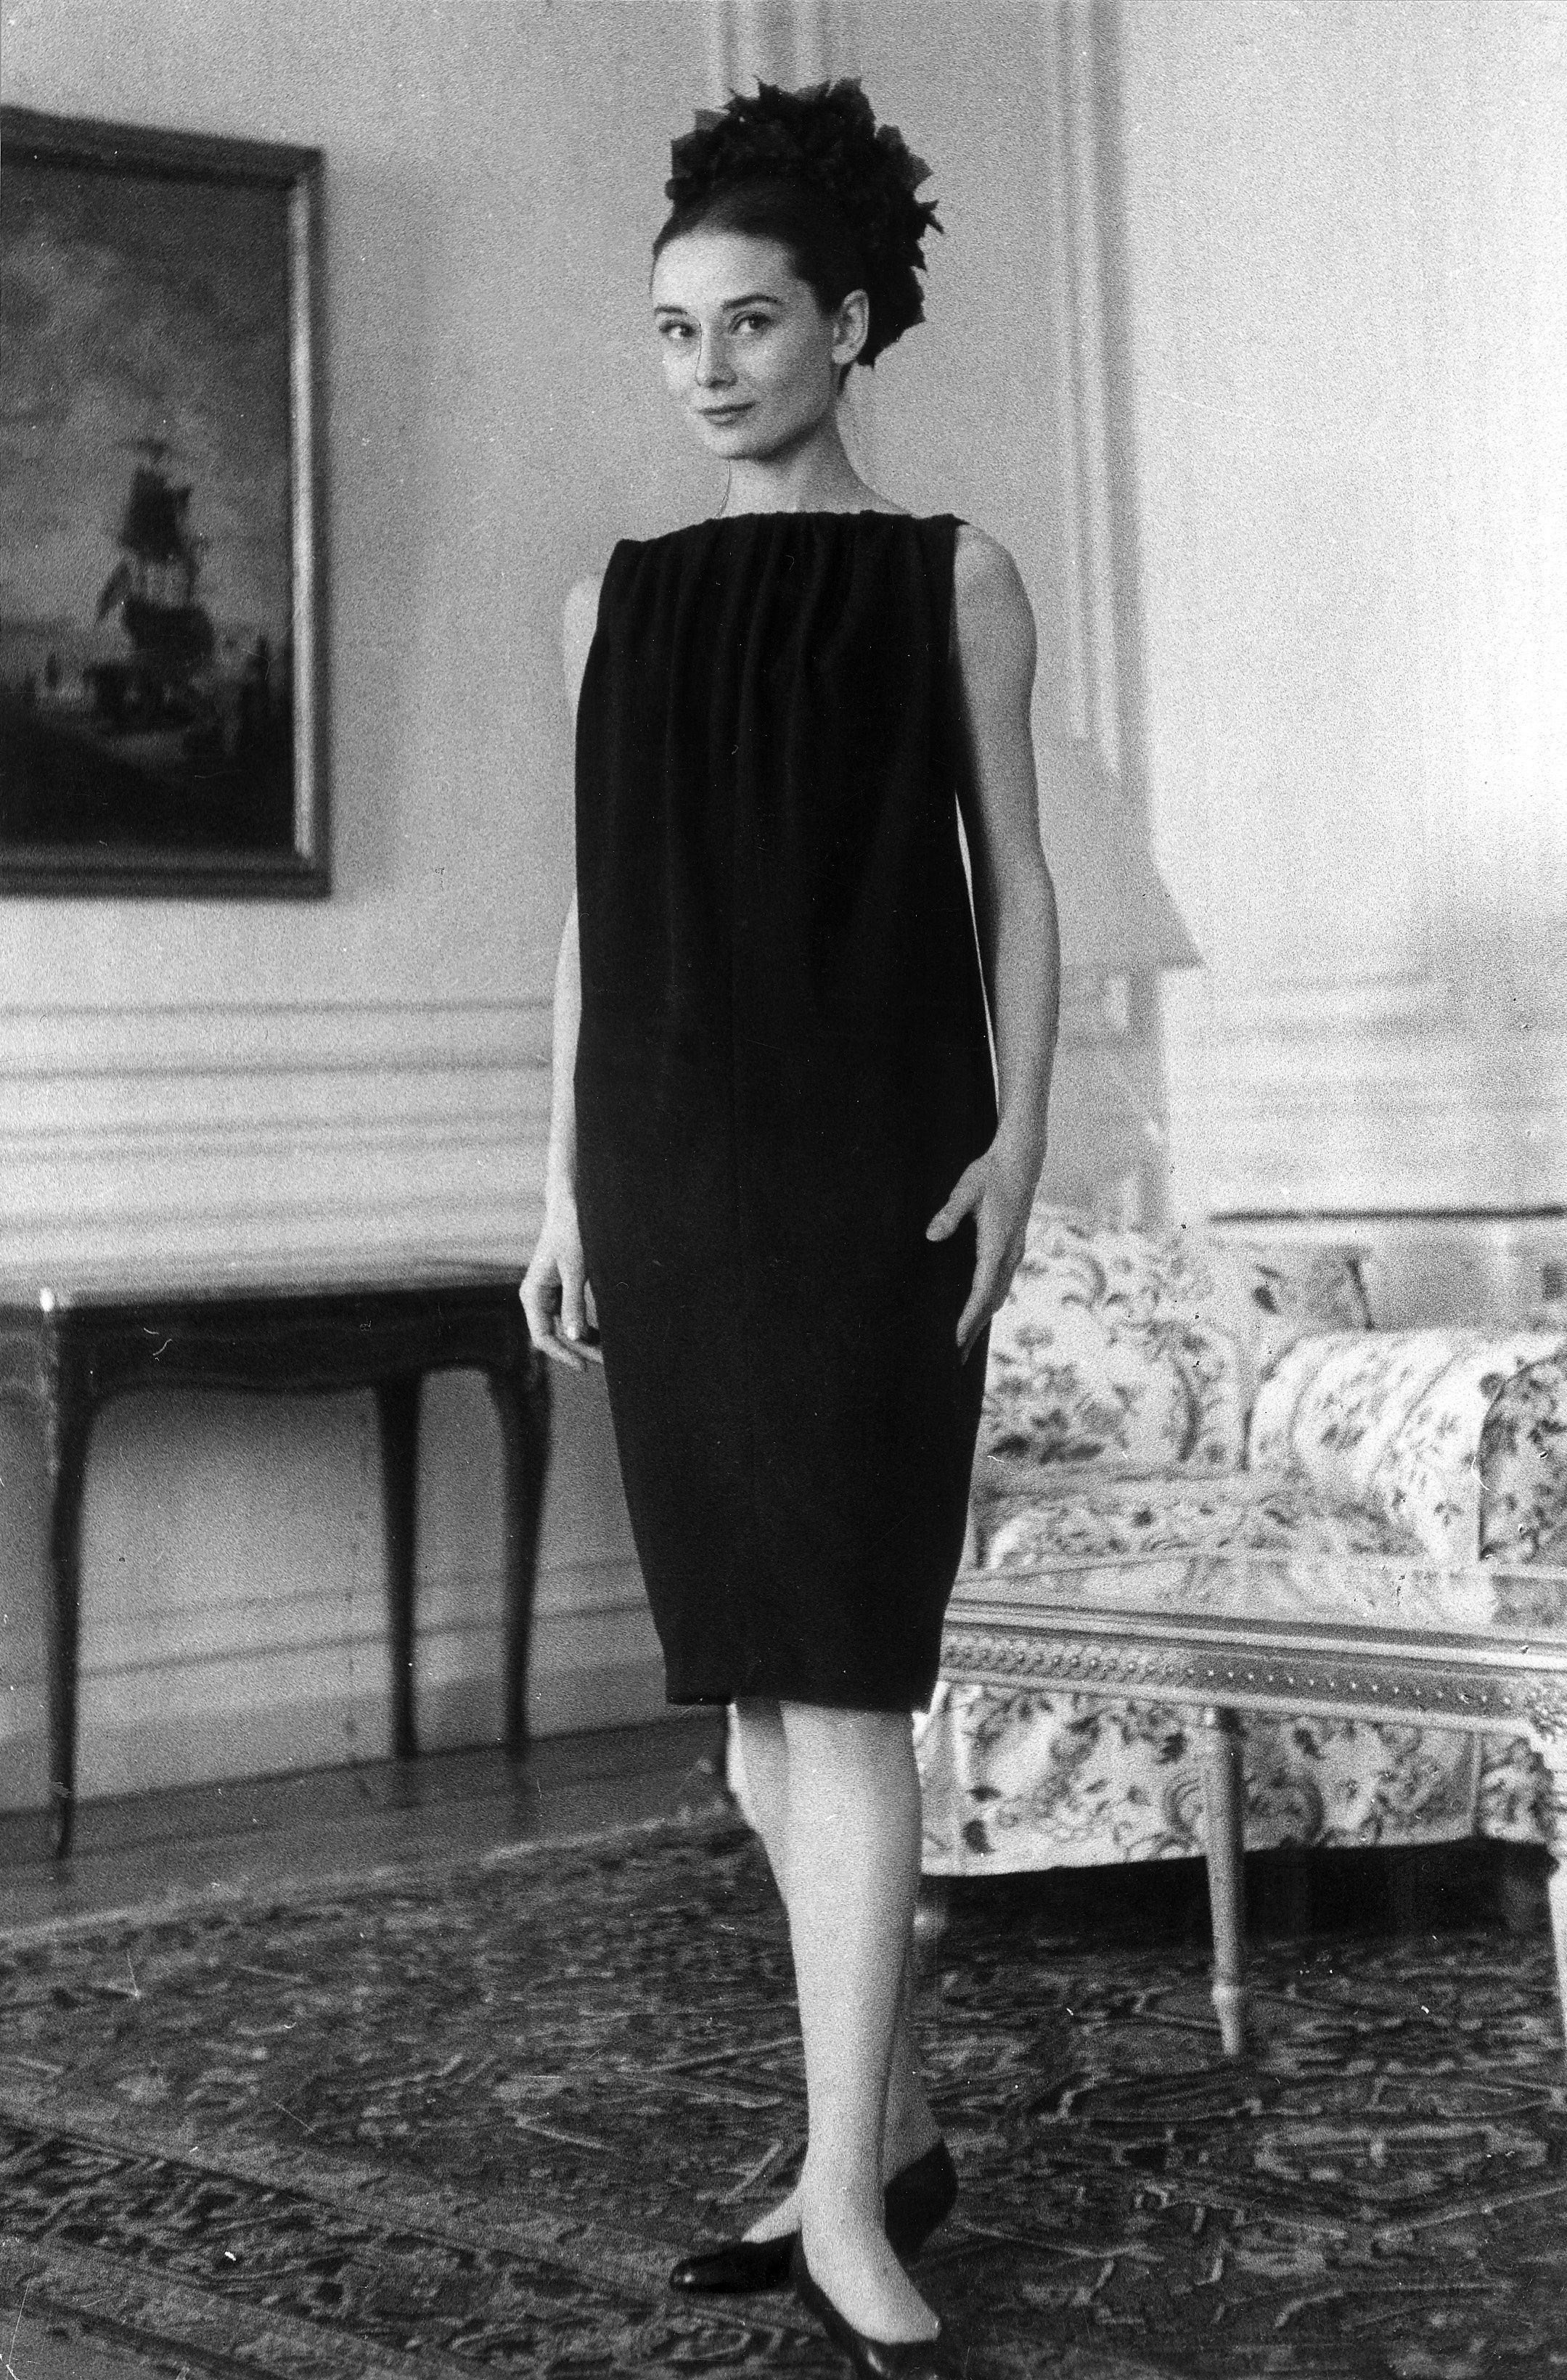 audrey hepburn 39 s 16 best beauty and fashion tips audrey pinterest audrey hepburn ponerse. Black Bedroom Furniture Sets. Home Design Ideas